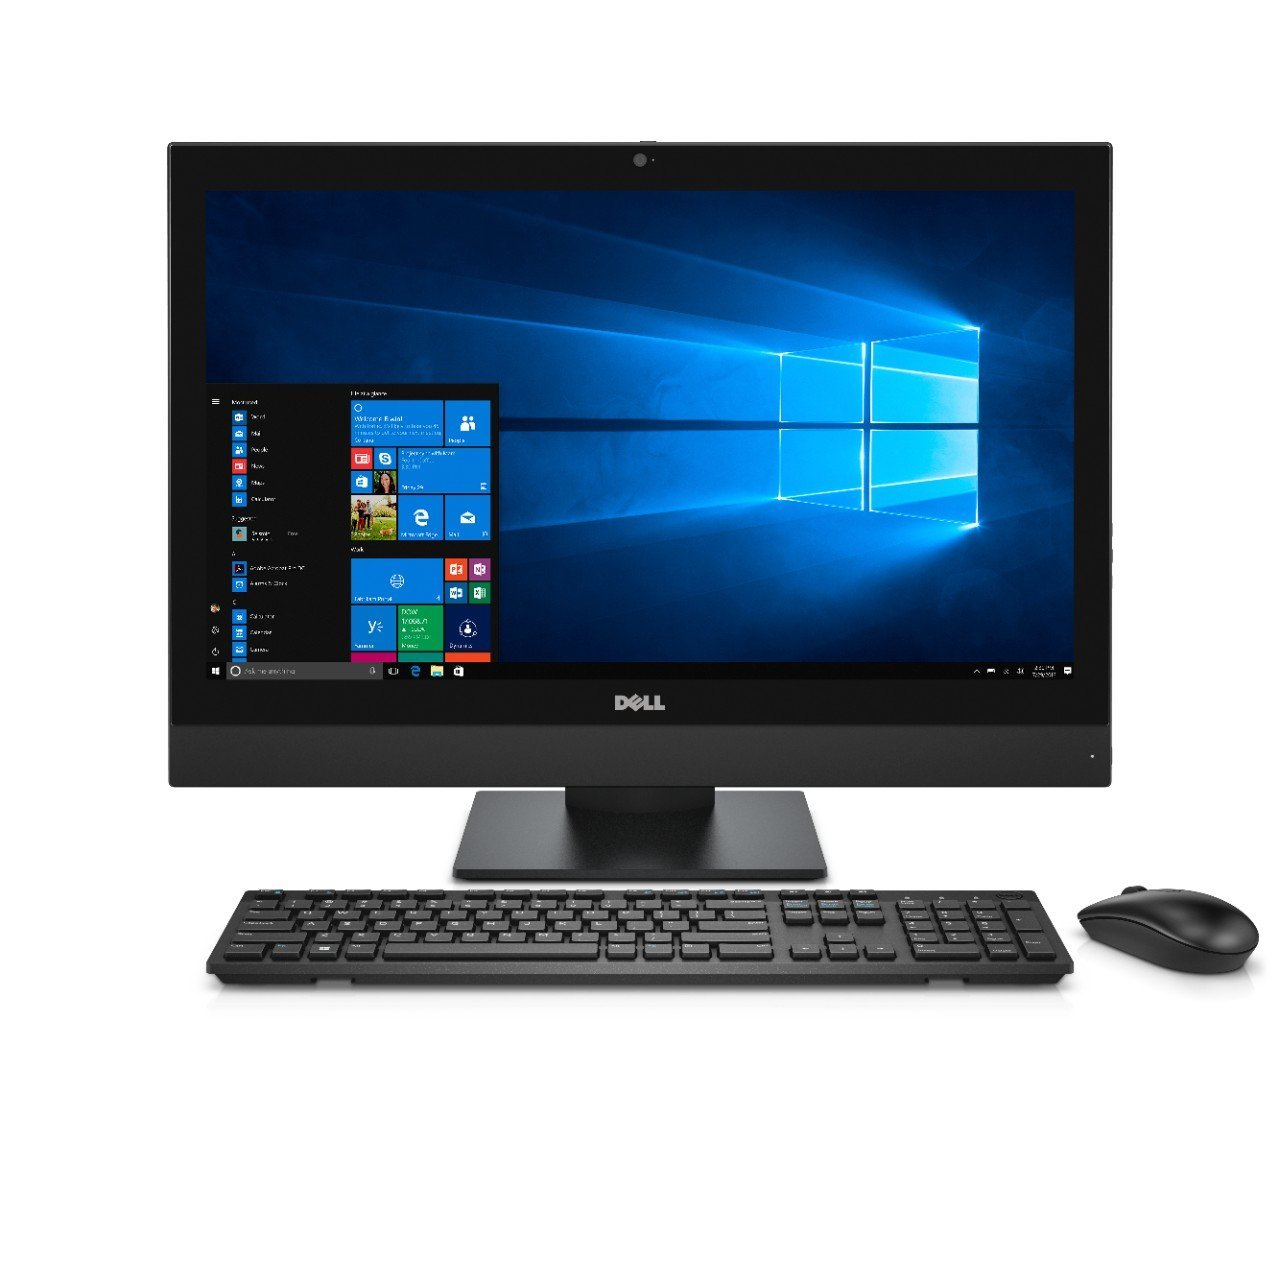 komputer aio dell optiplex 7450 aio 23 8 core i5 7500 4gb. Black Bedroom Furniture Sets. Home Design Ideas